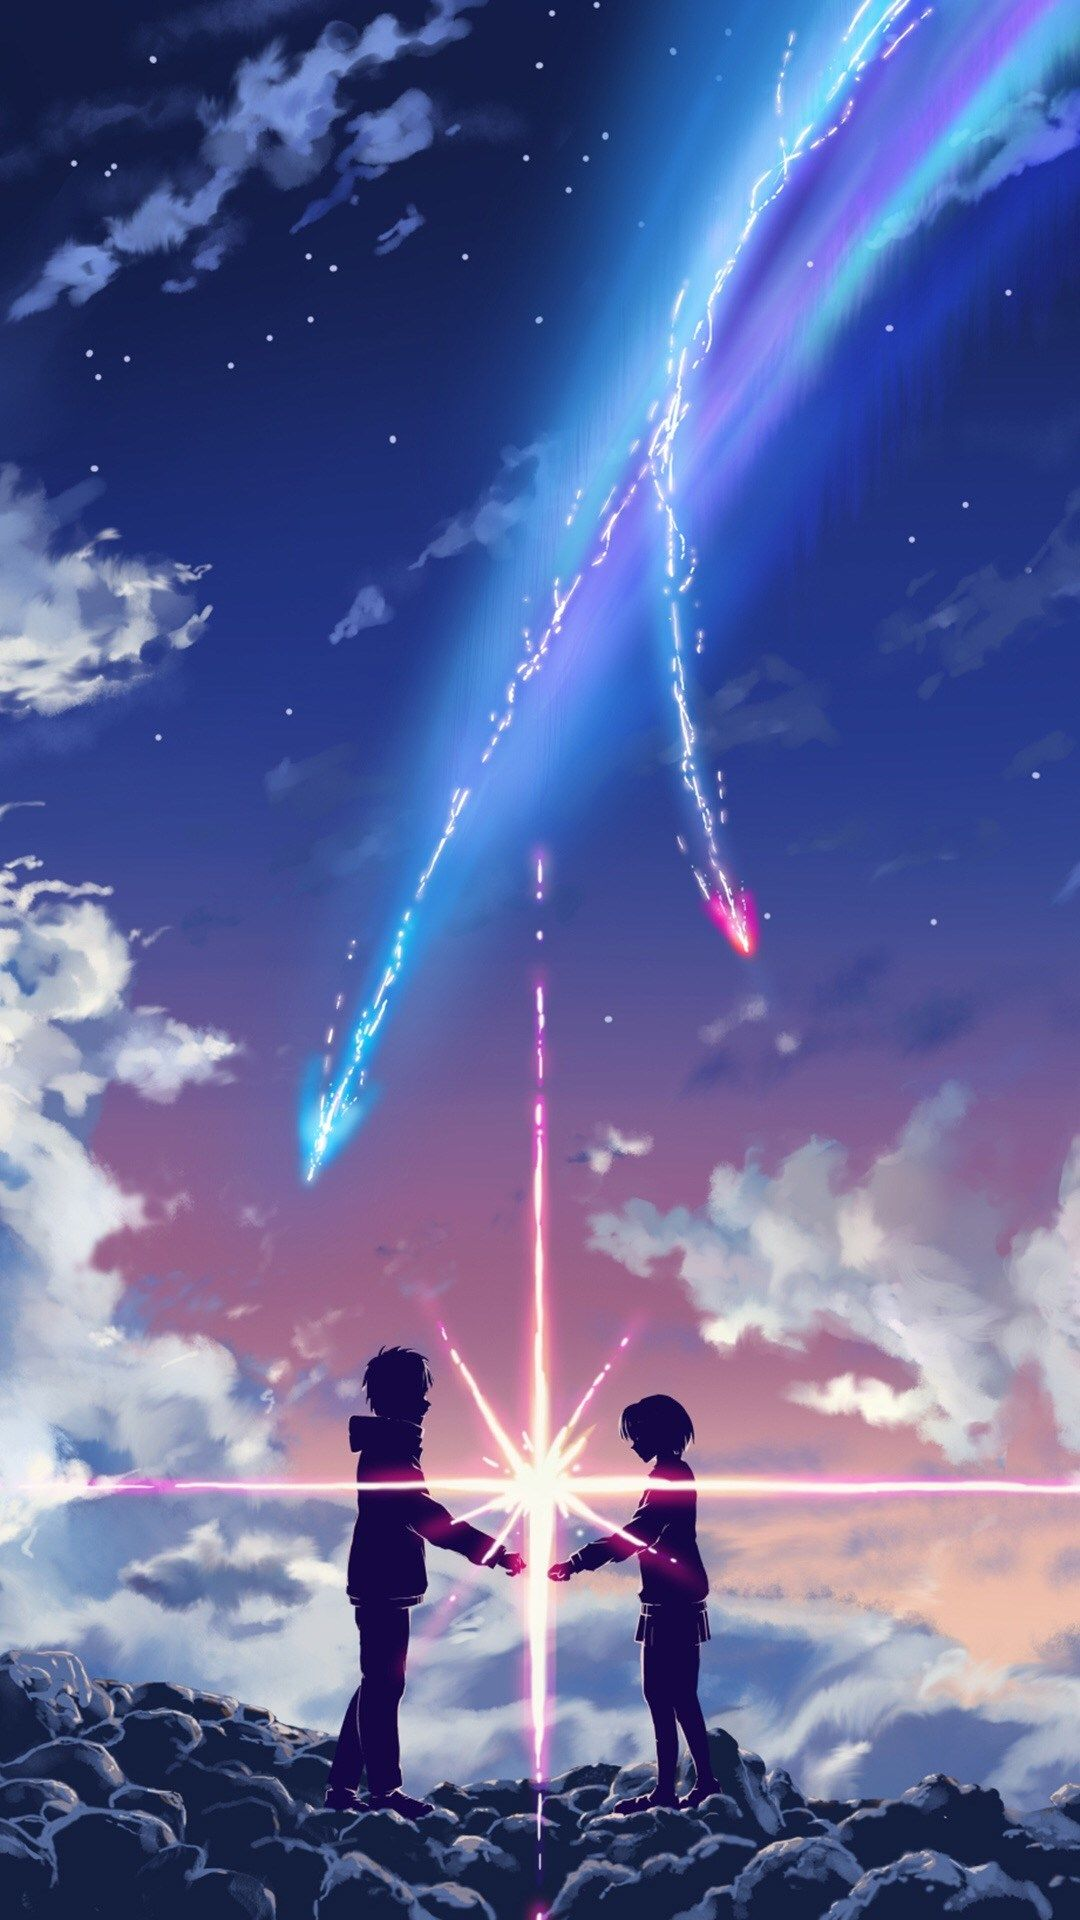 Your Name Gif Wallpaper Phone : wallpaper, phone, Movie, Touching, Through, Space, Poster, #iPhone, #wallpaper, Filmes, Anime,, Animes, Romantico